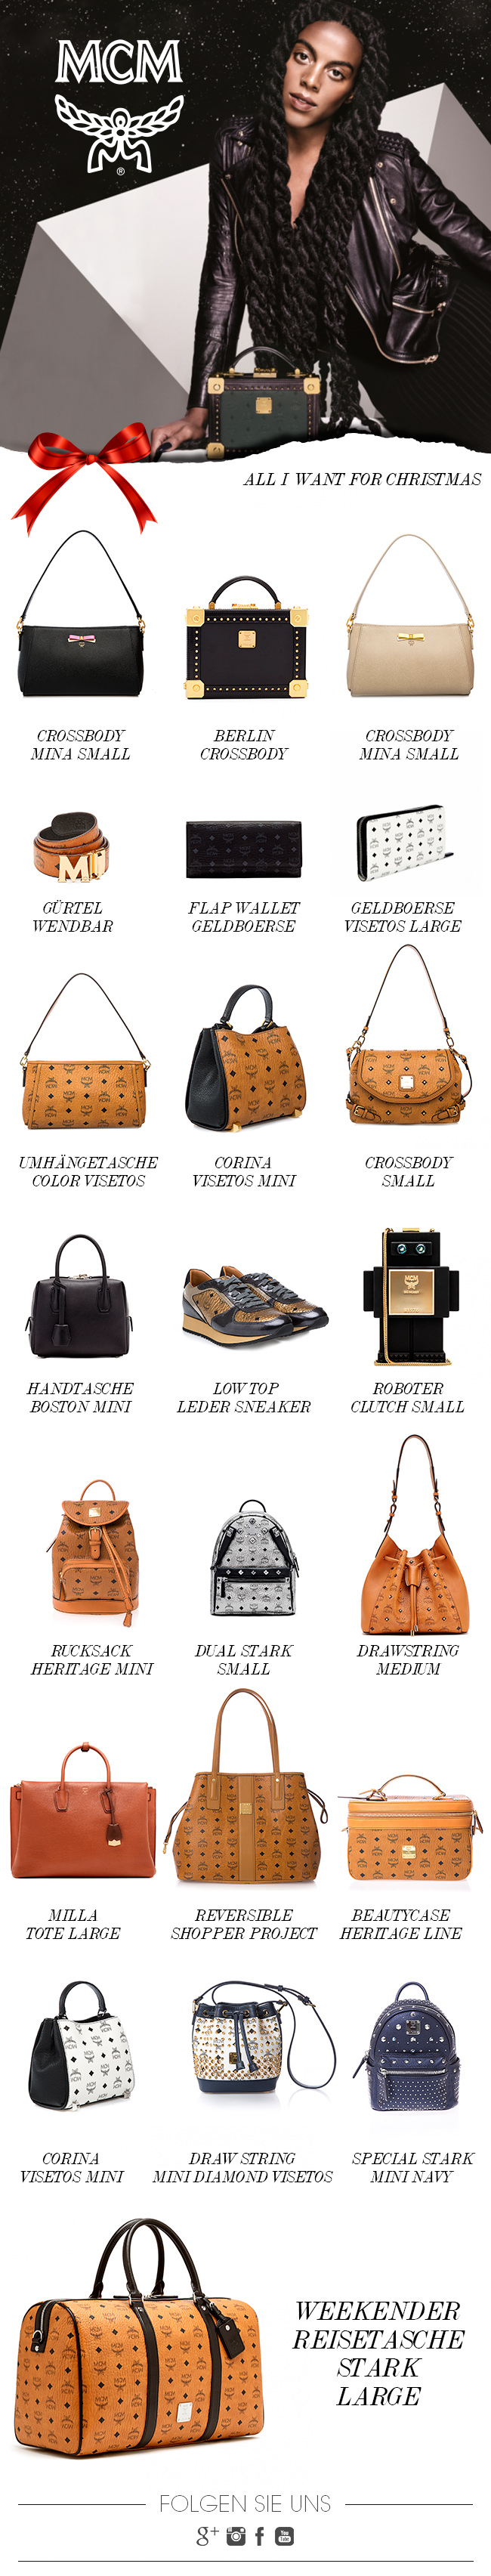 #newsletter #mcmbag #sailerstyle #fashionview #sailerfashionview